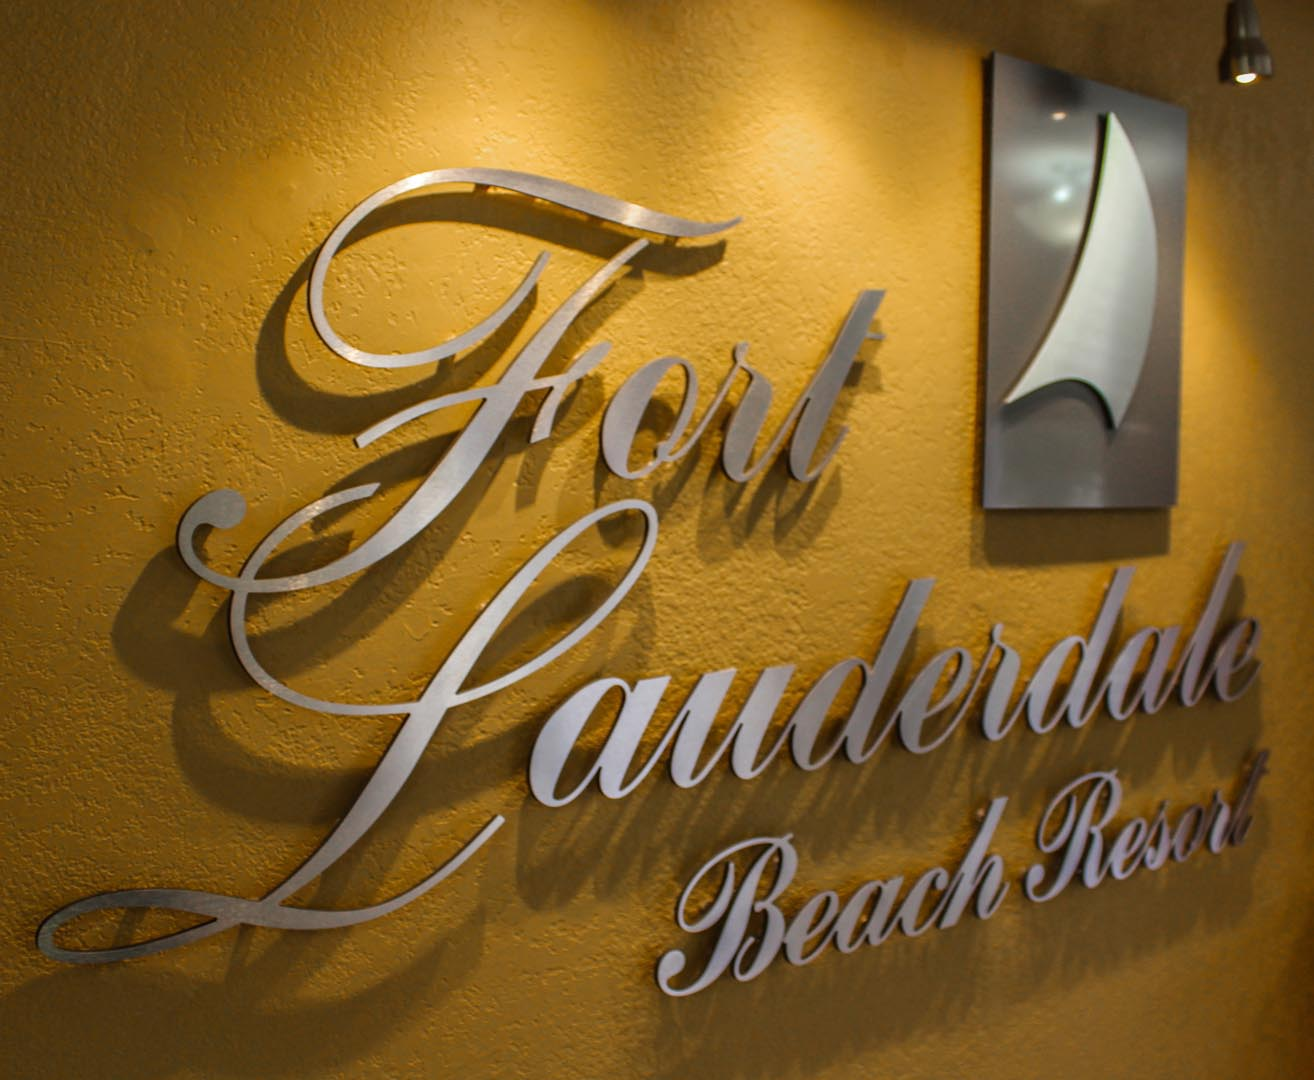 Ft-Lauderdale-Beach-Resort-Club-14